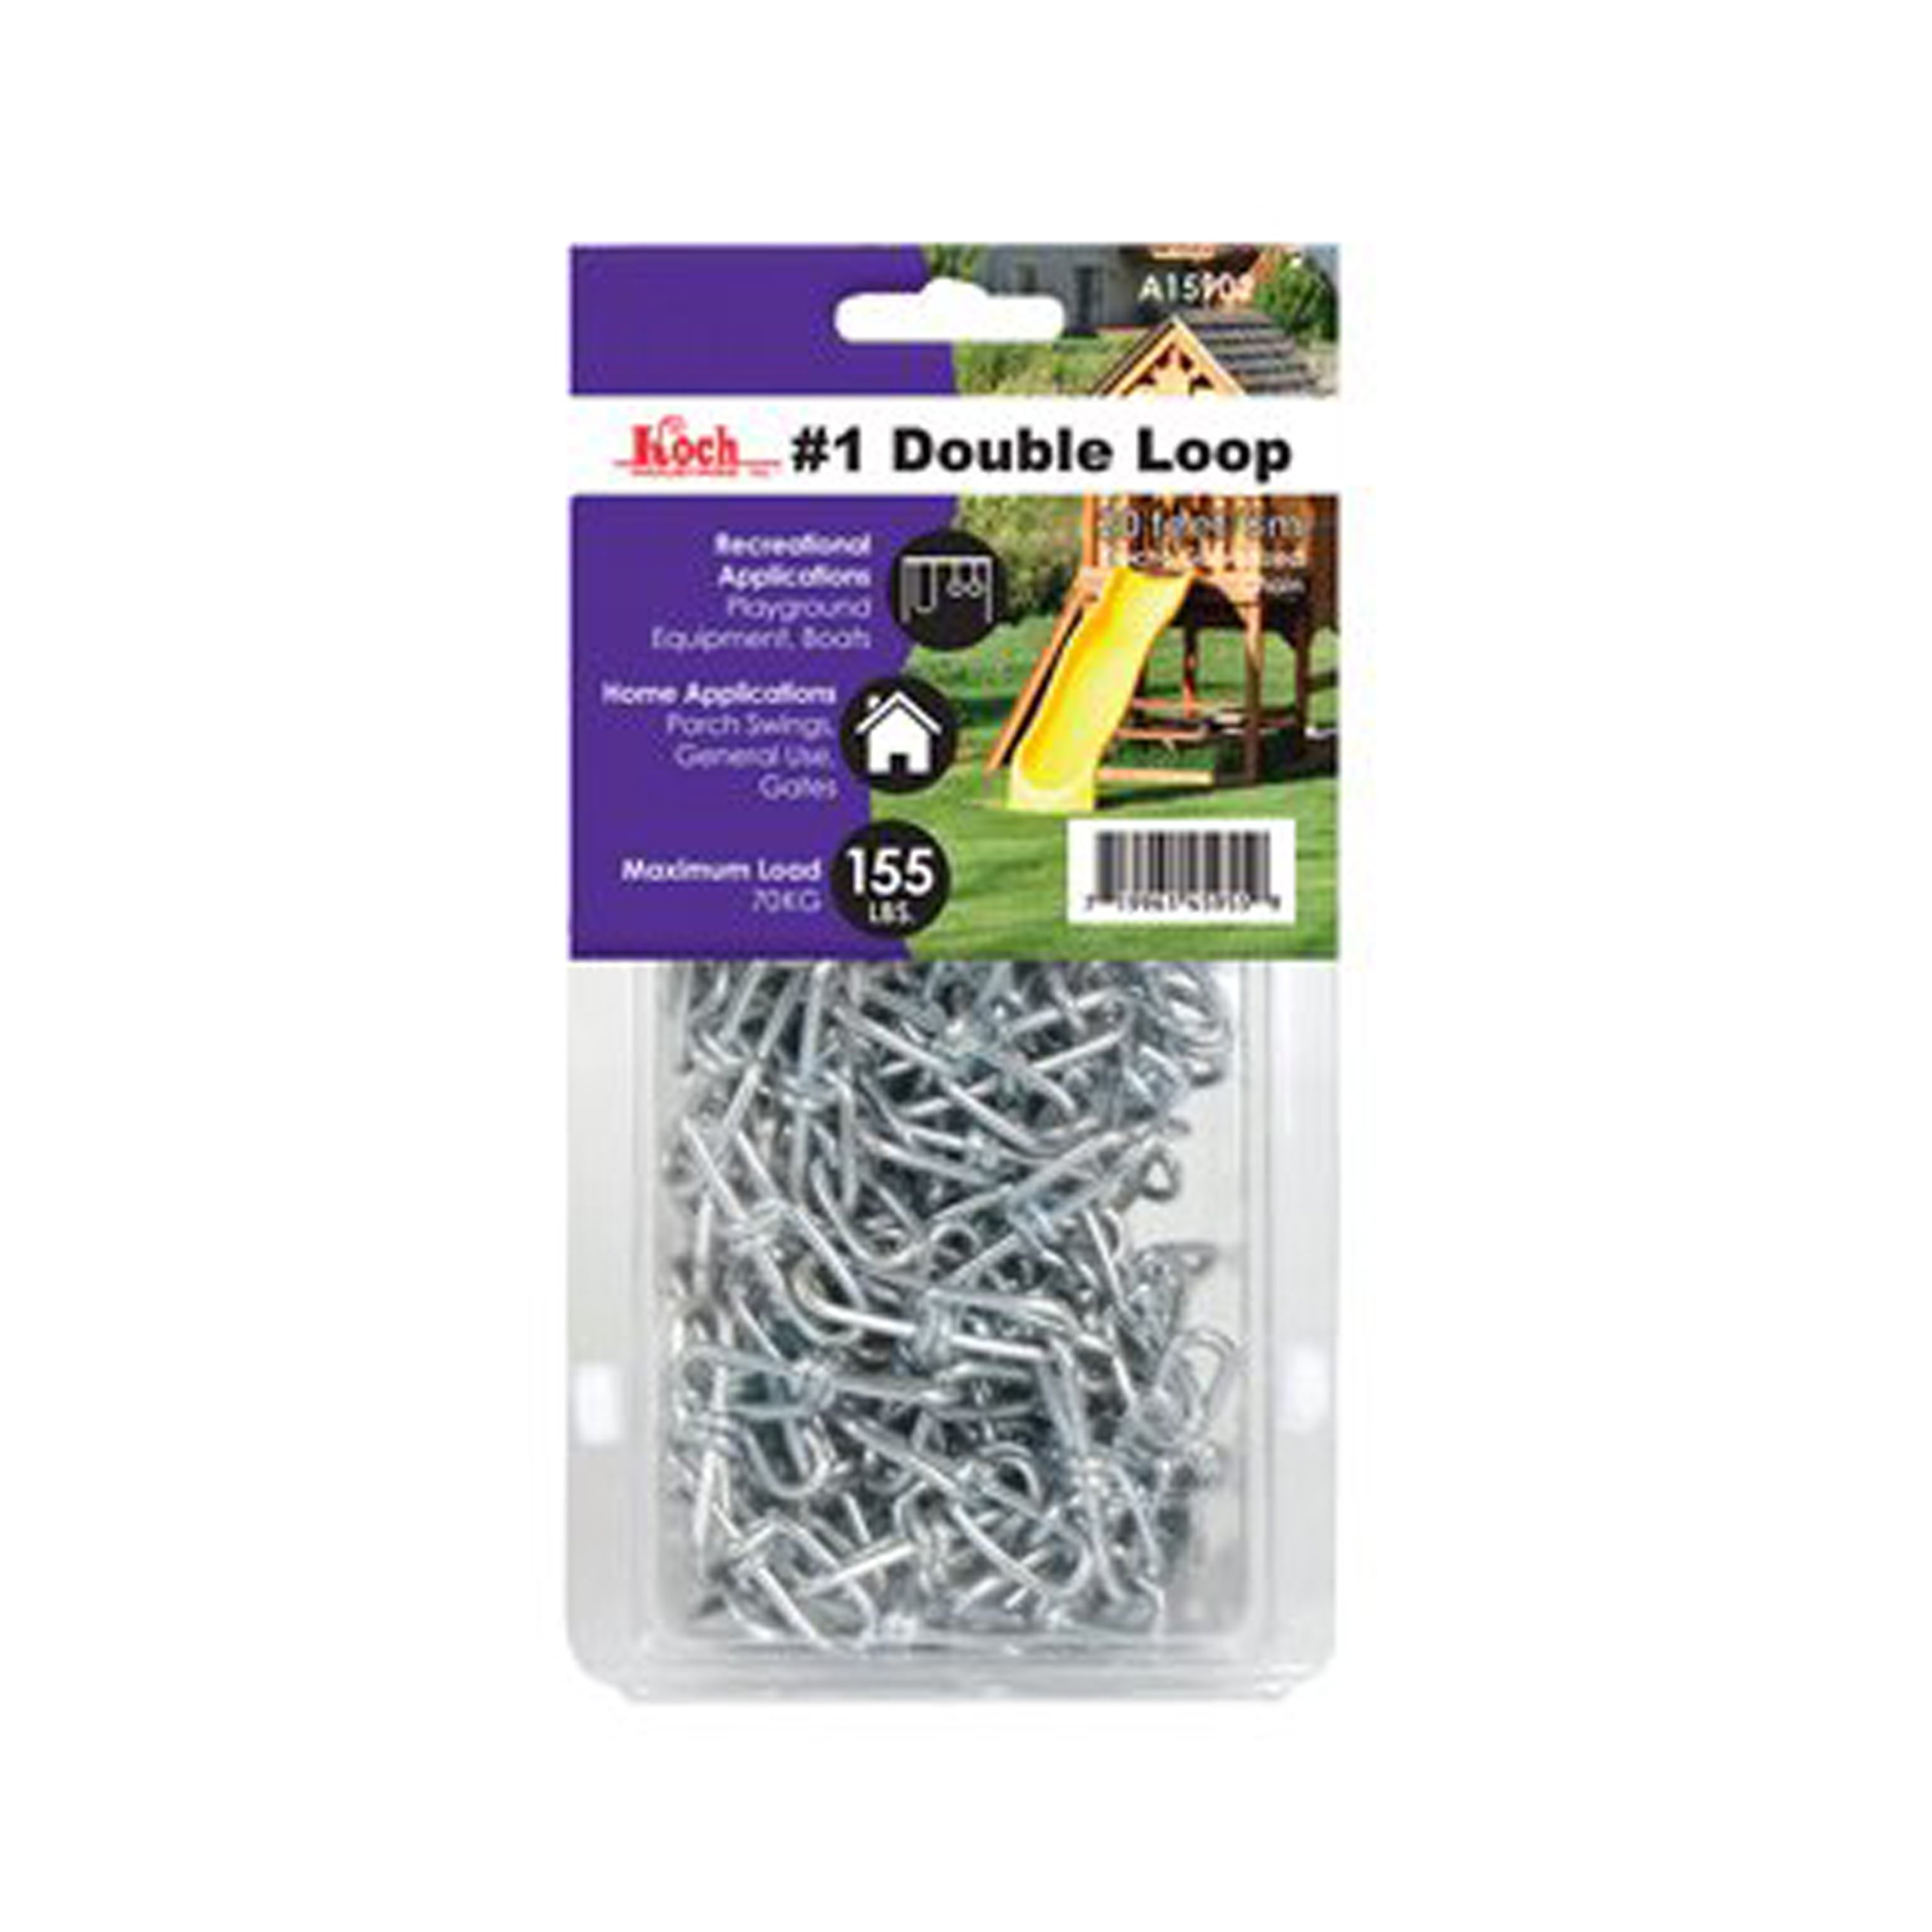 Koch A15922 Double Loop Chain, 2/0 X 20 Ft, 255 Lb, 2/0, Zinc Plated by Koch